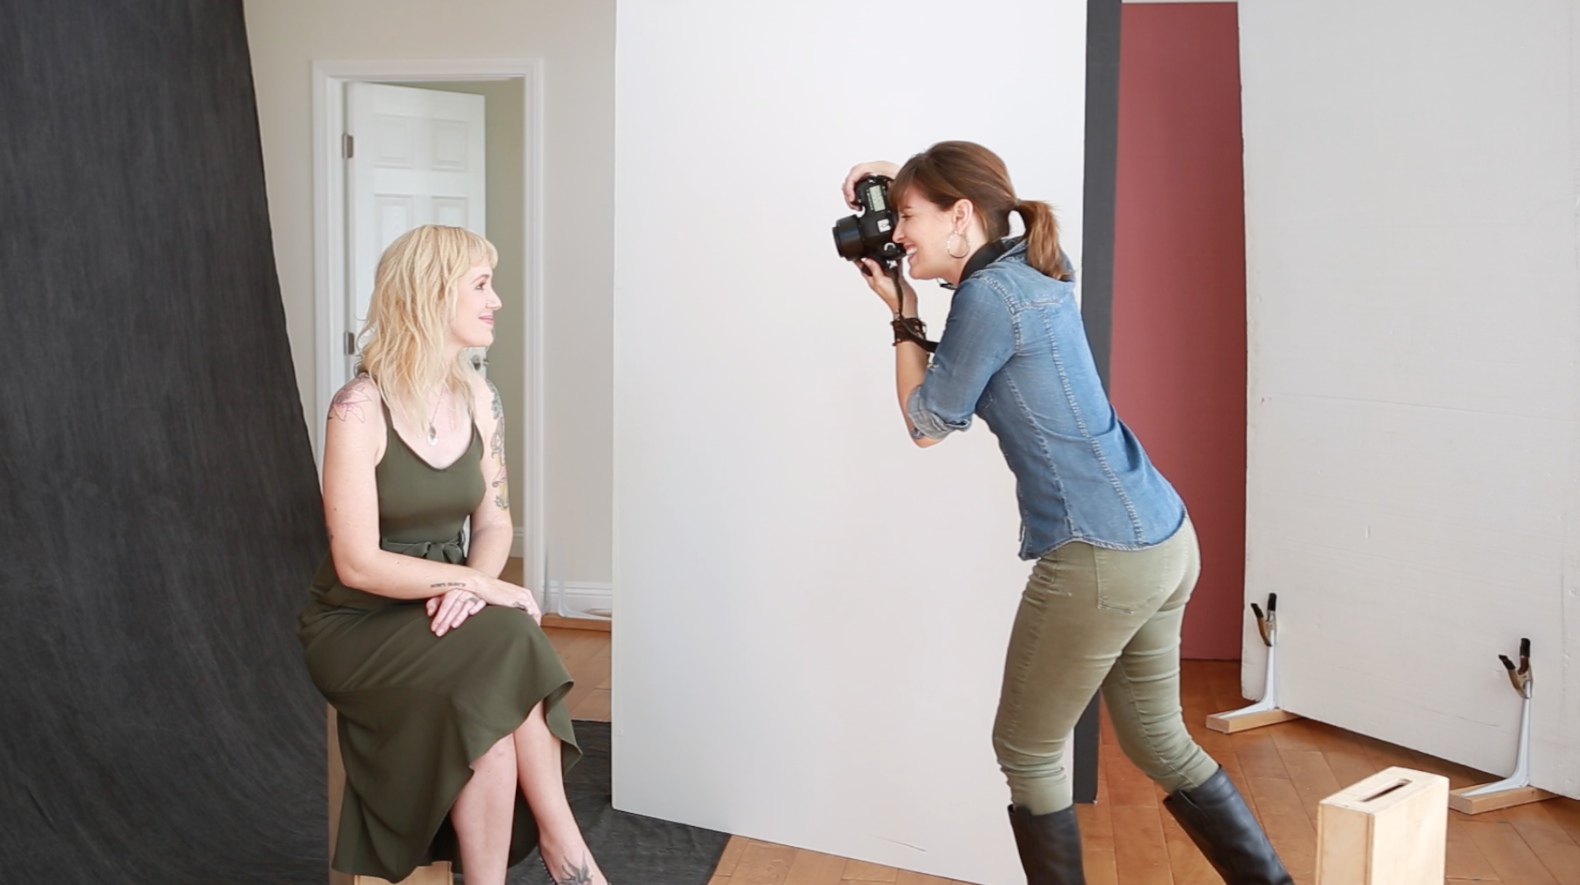 san diego branding photographer behind the scenes marcy browe